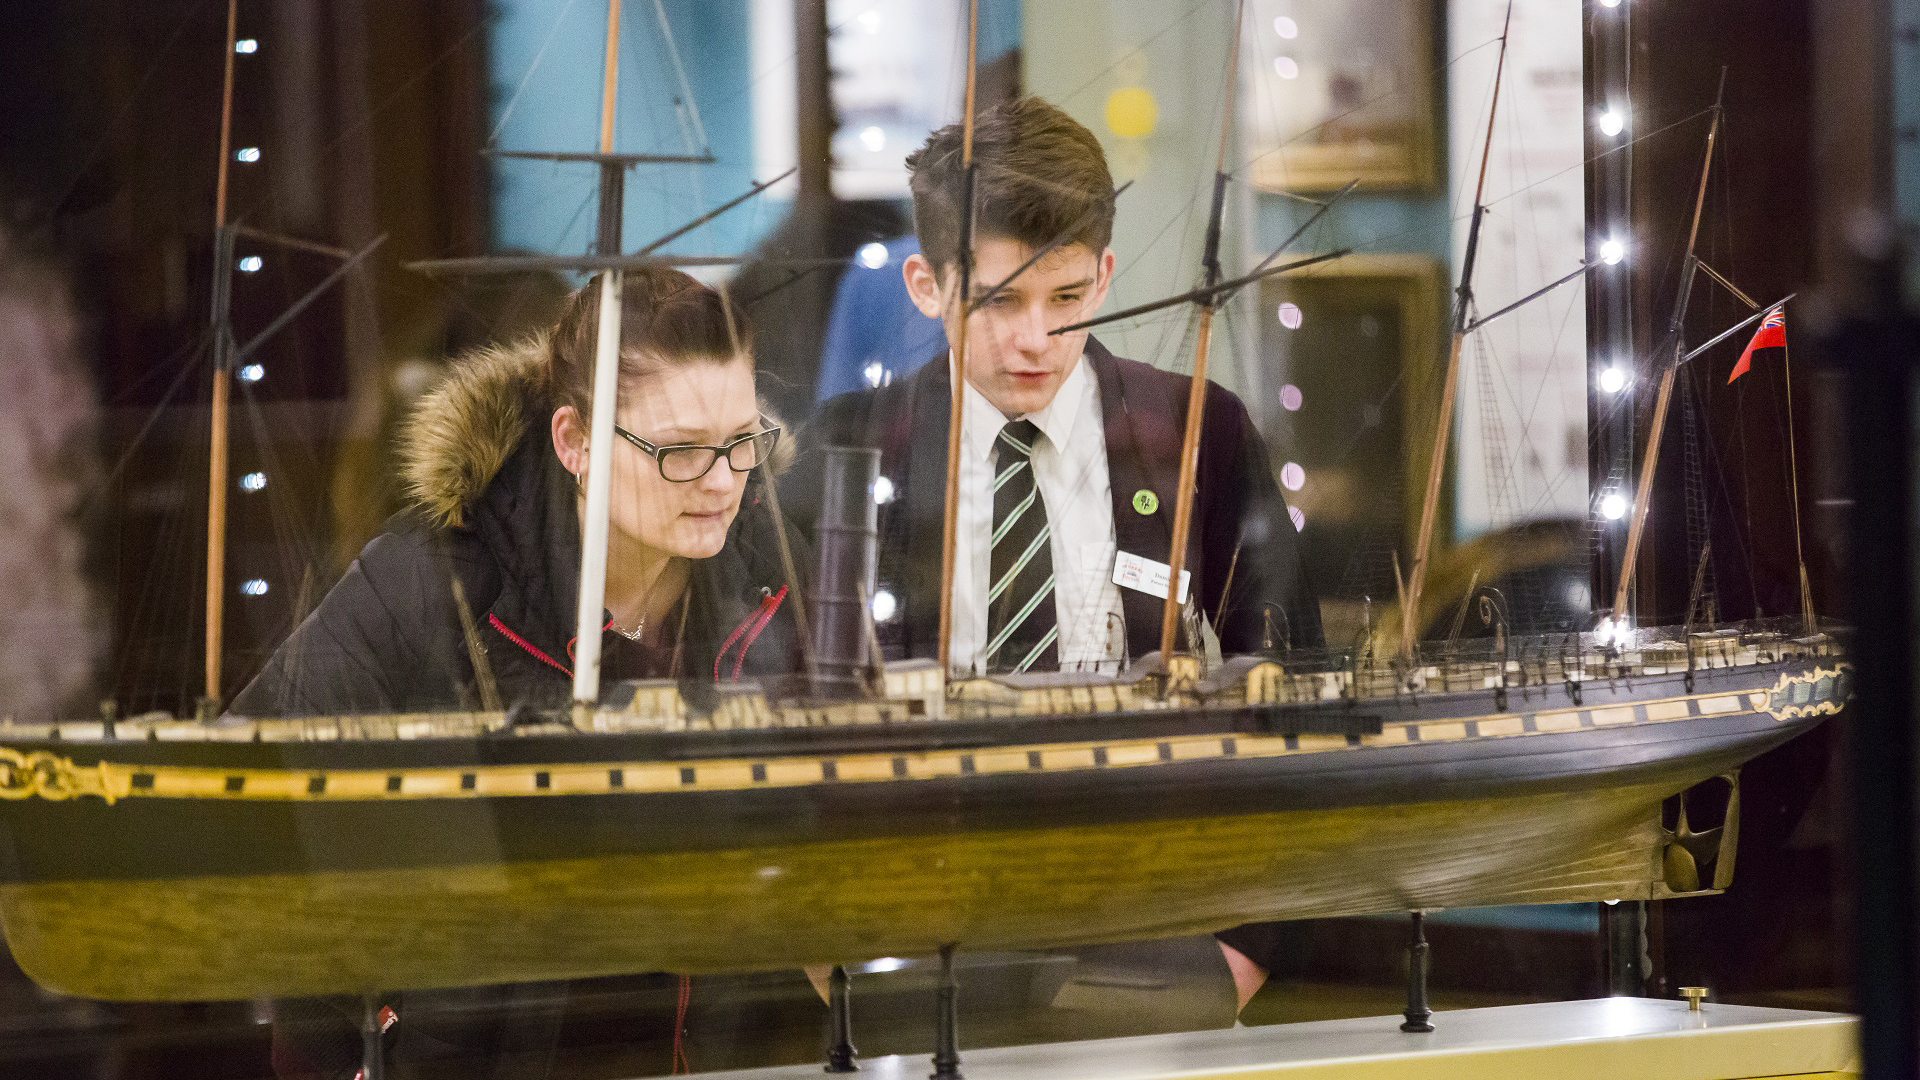 visitors looking at a model of the SS Great Britain